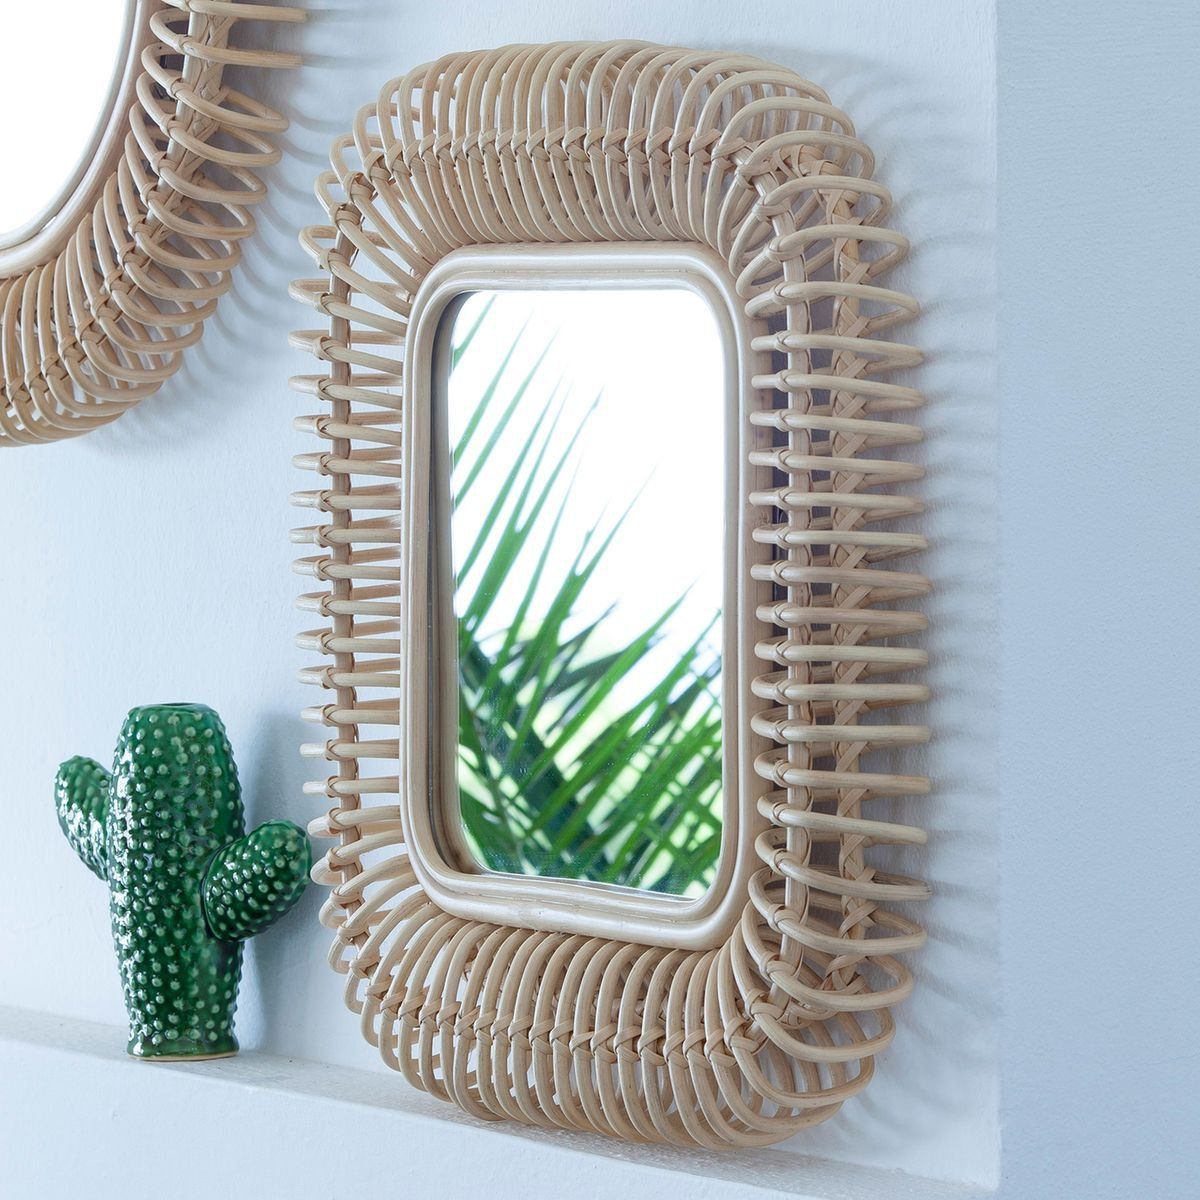 Cannage Rotin Miroir Rotin Osier Rotin Cannage Wicker And Rattan